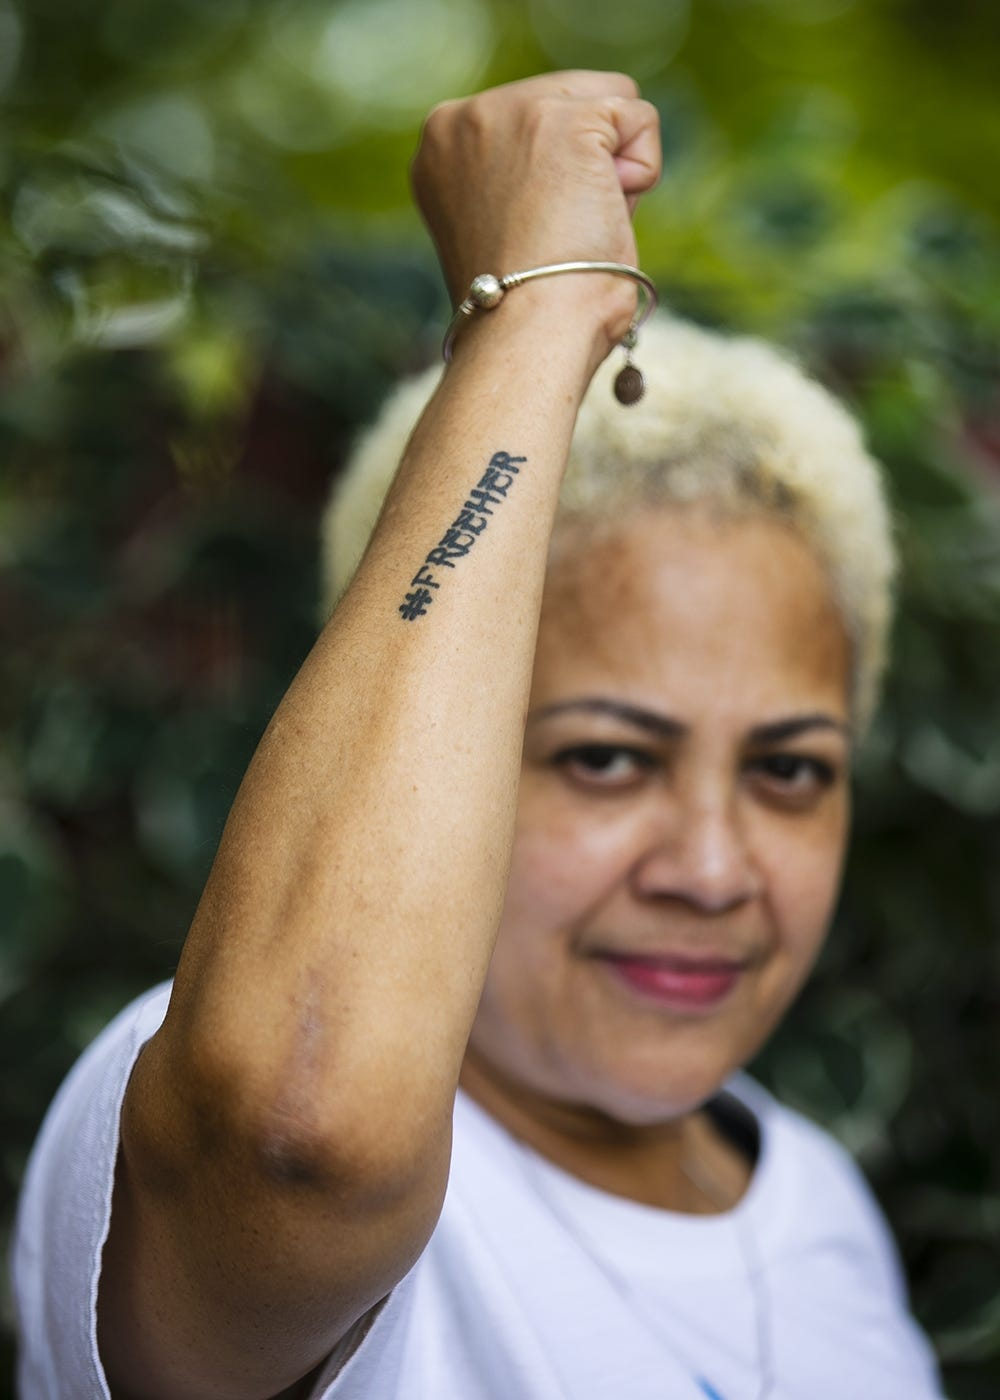 Stacey Borden raises her fist to show her tattoo that reads #FREEHER outside her Brockton home on Tuesday, Aug. 25, 2020. The #FreeHer campaign is part of The National Council's mission to end incarceration of women and girls.